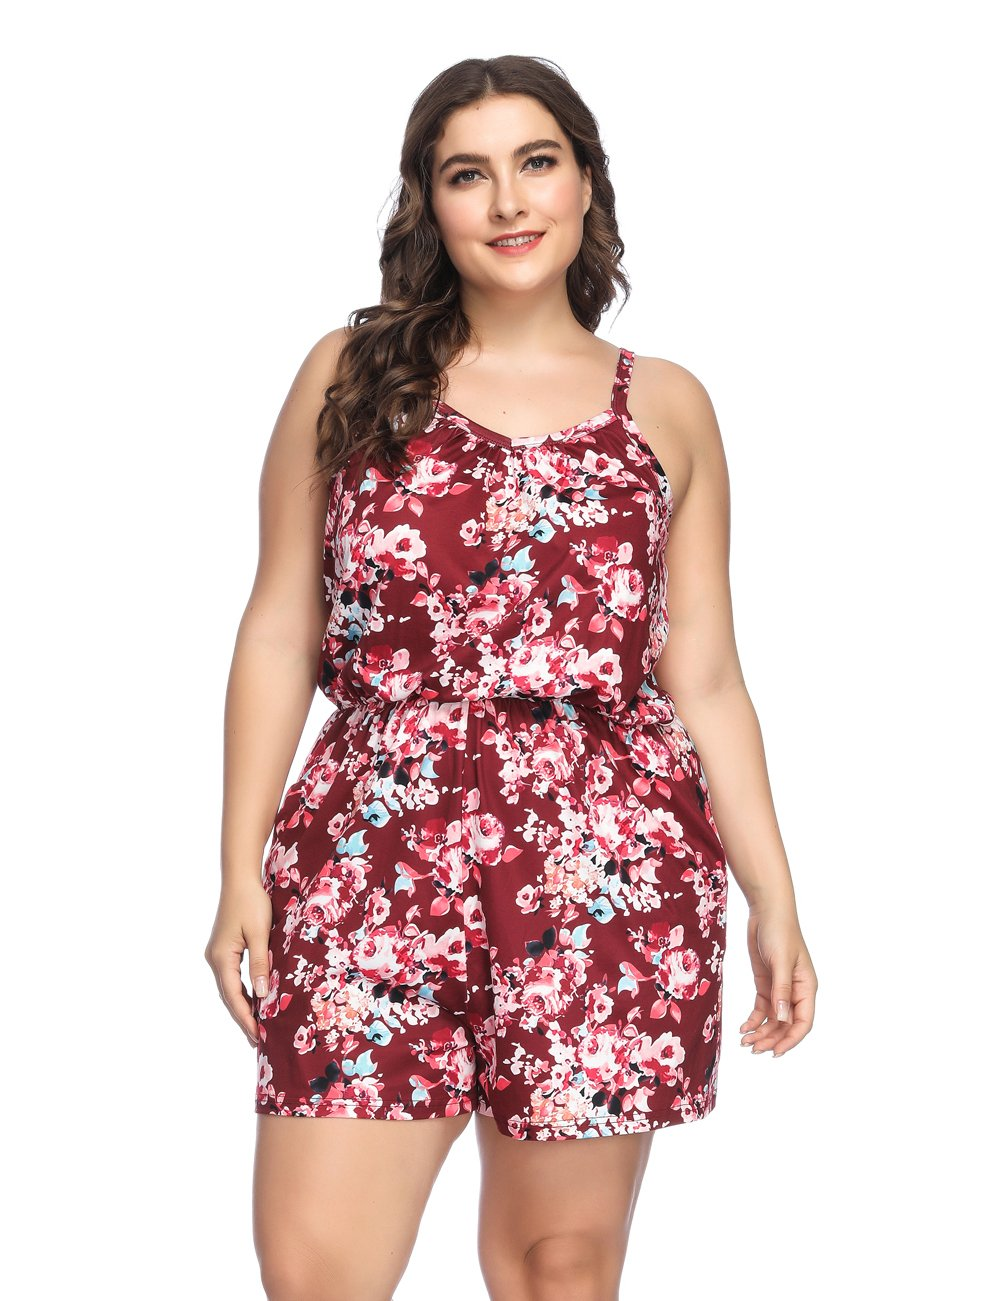 HUHHRRY Floral Romper Summer Sexy Sleeveless Elastic Waist Party Jumpsuit